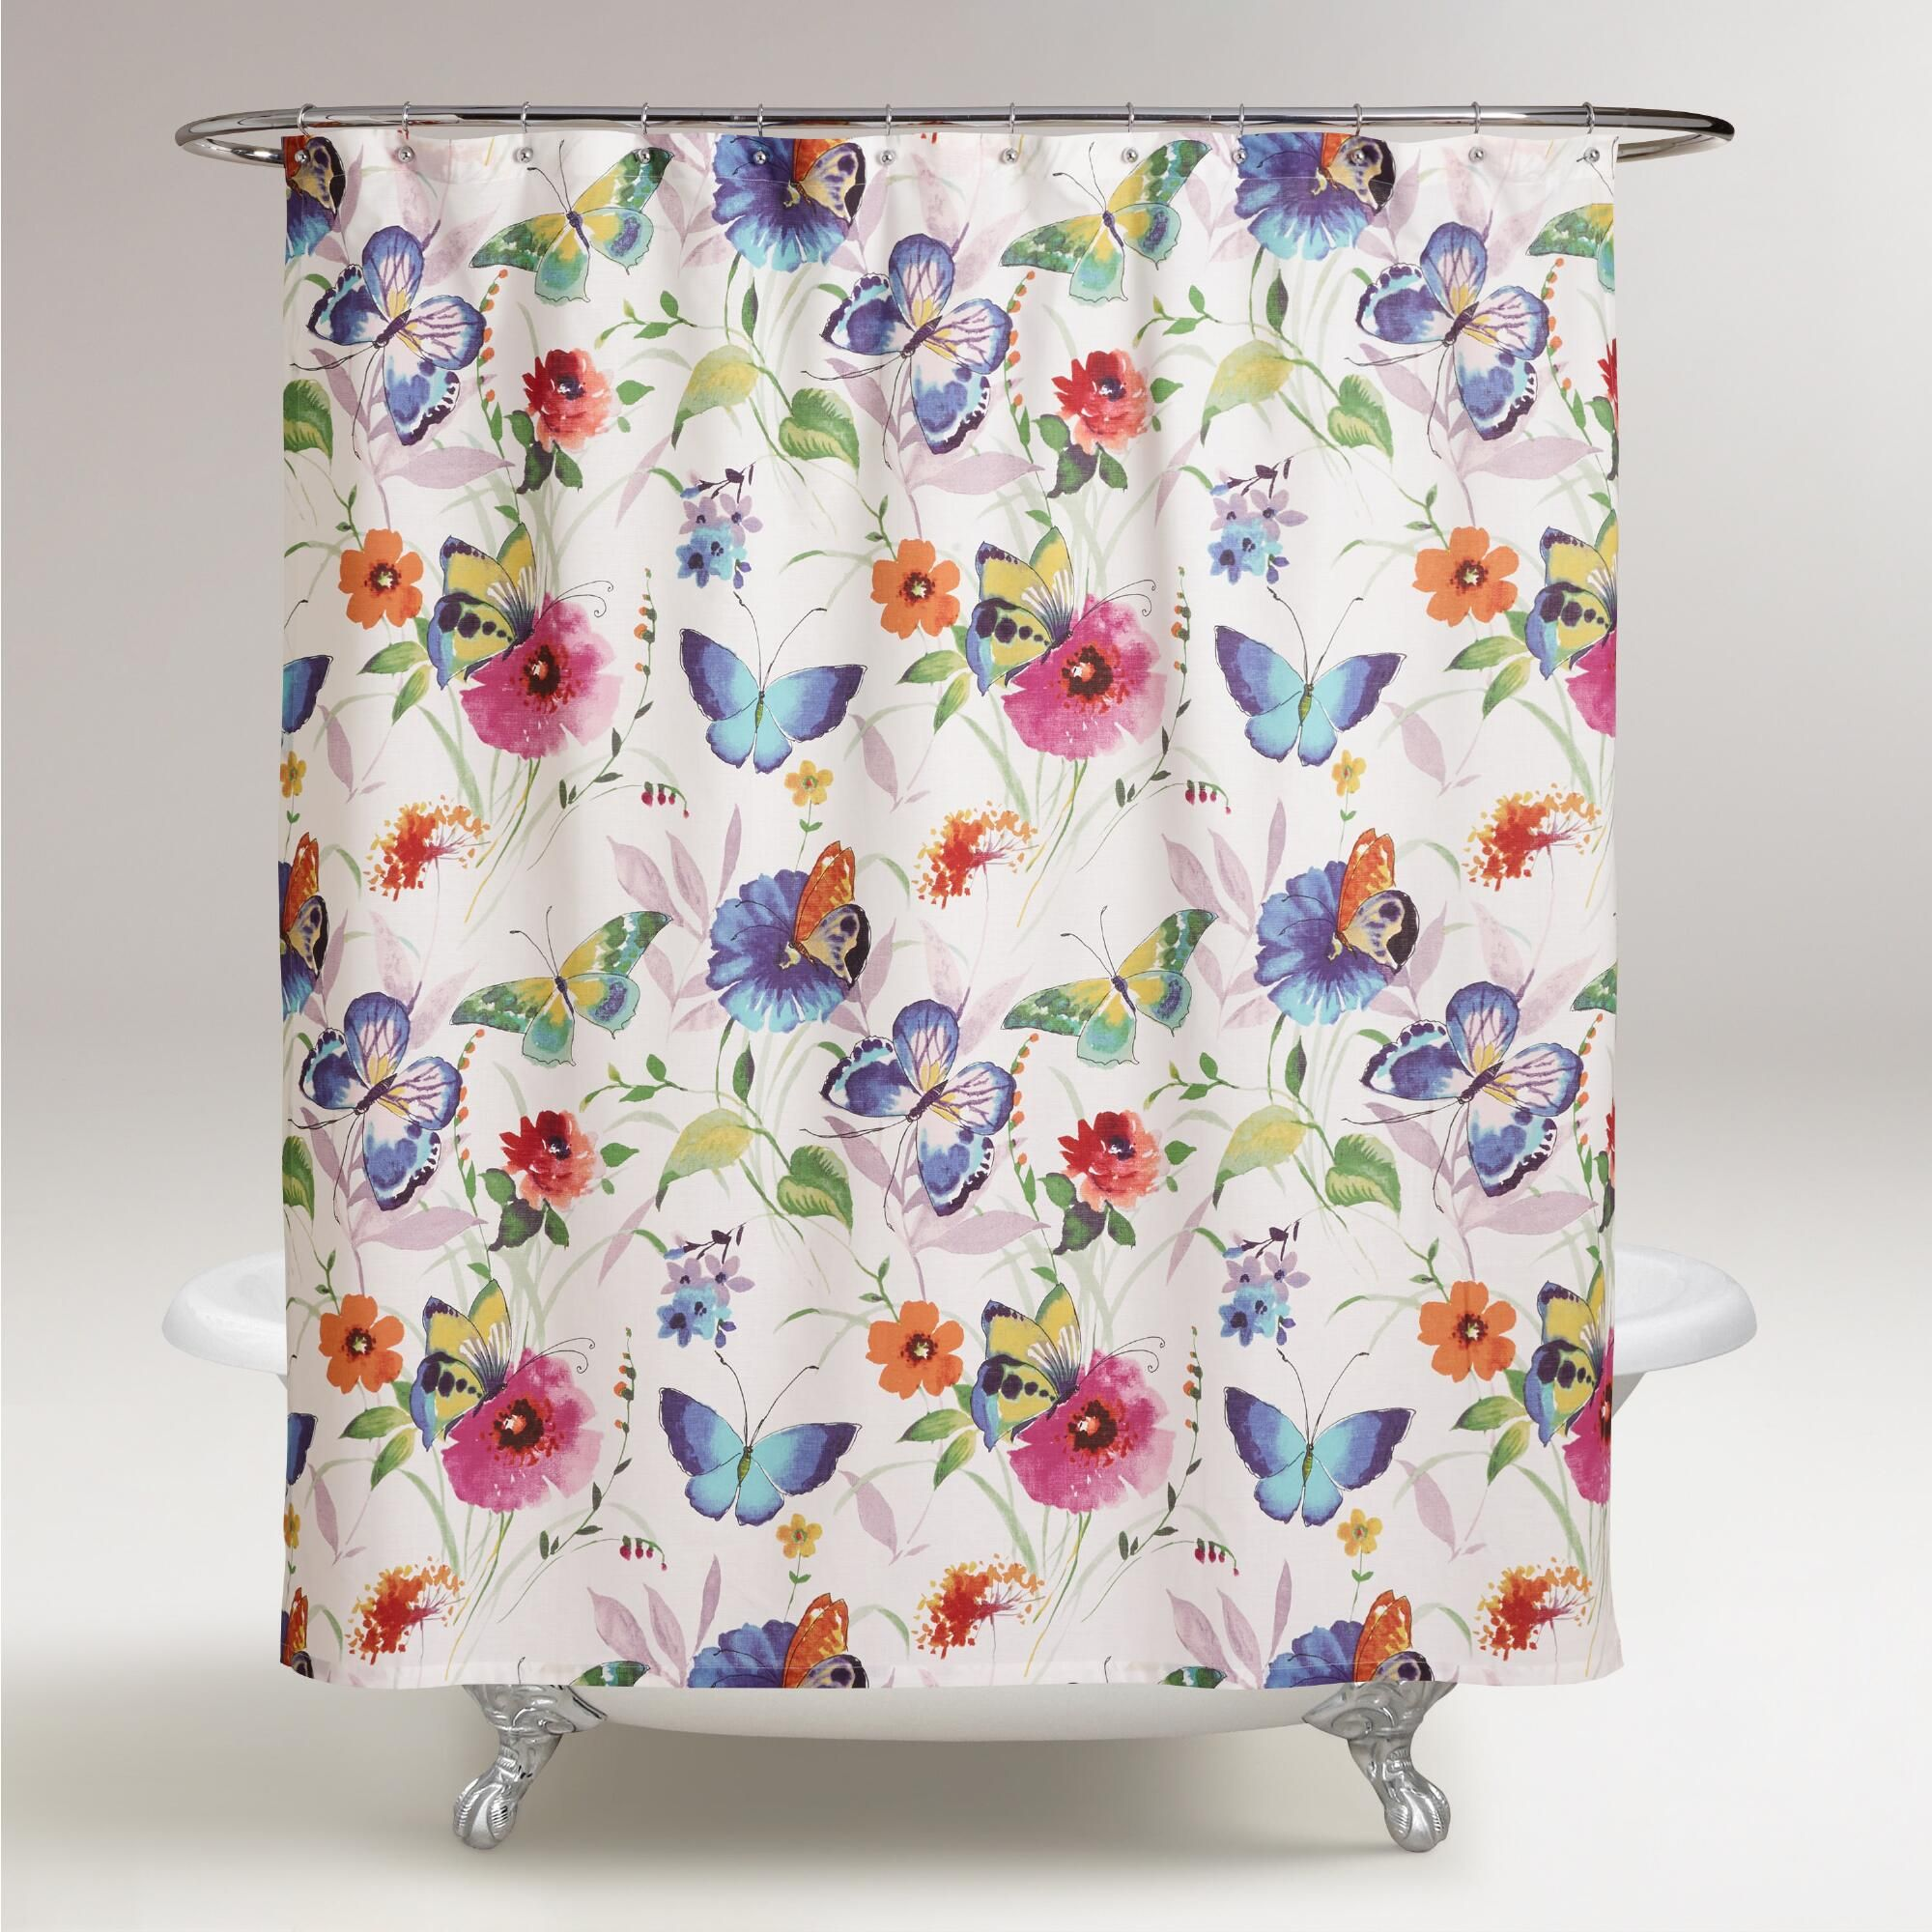 Colorful shower curtains - Butterfly Watercolor Floral Shower Curtain